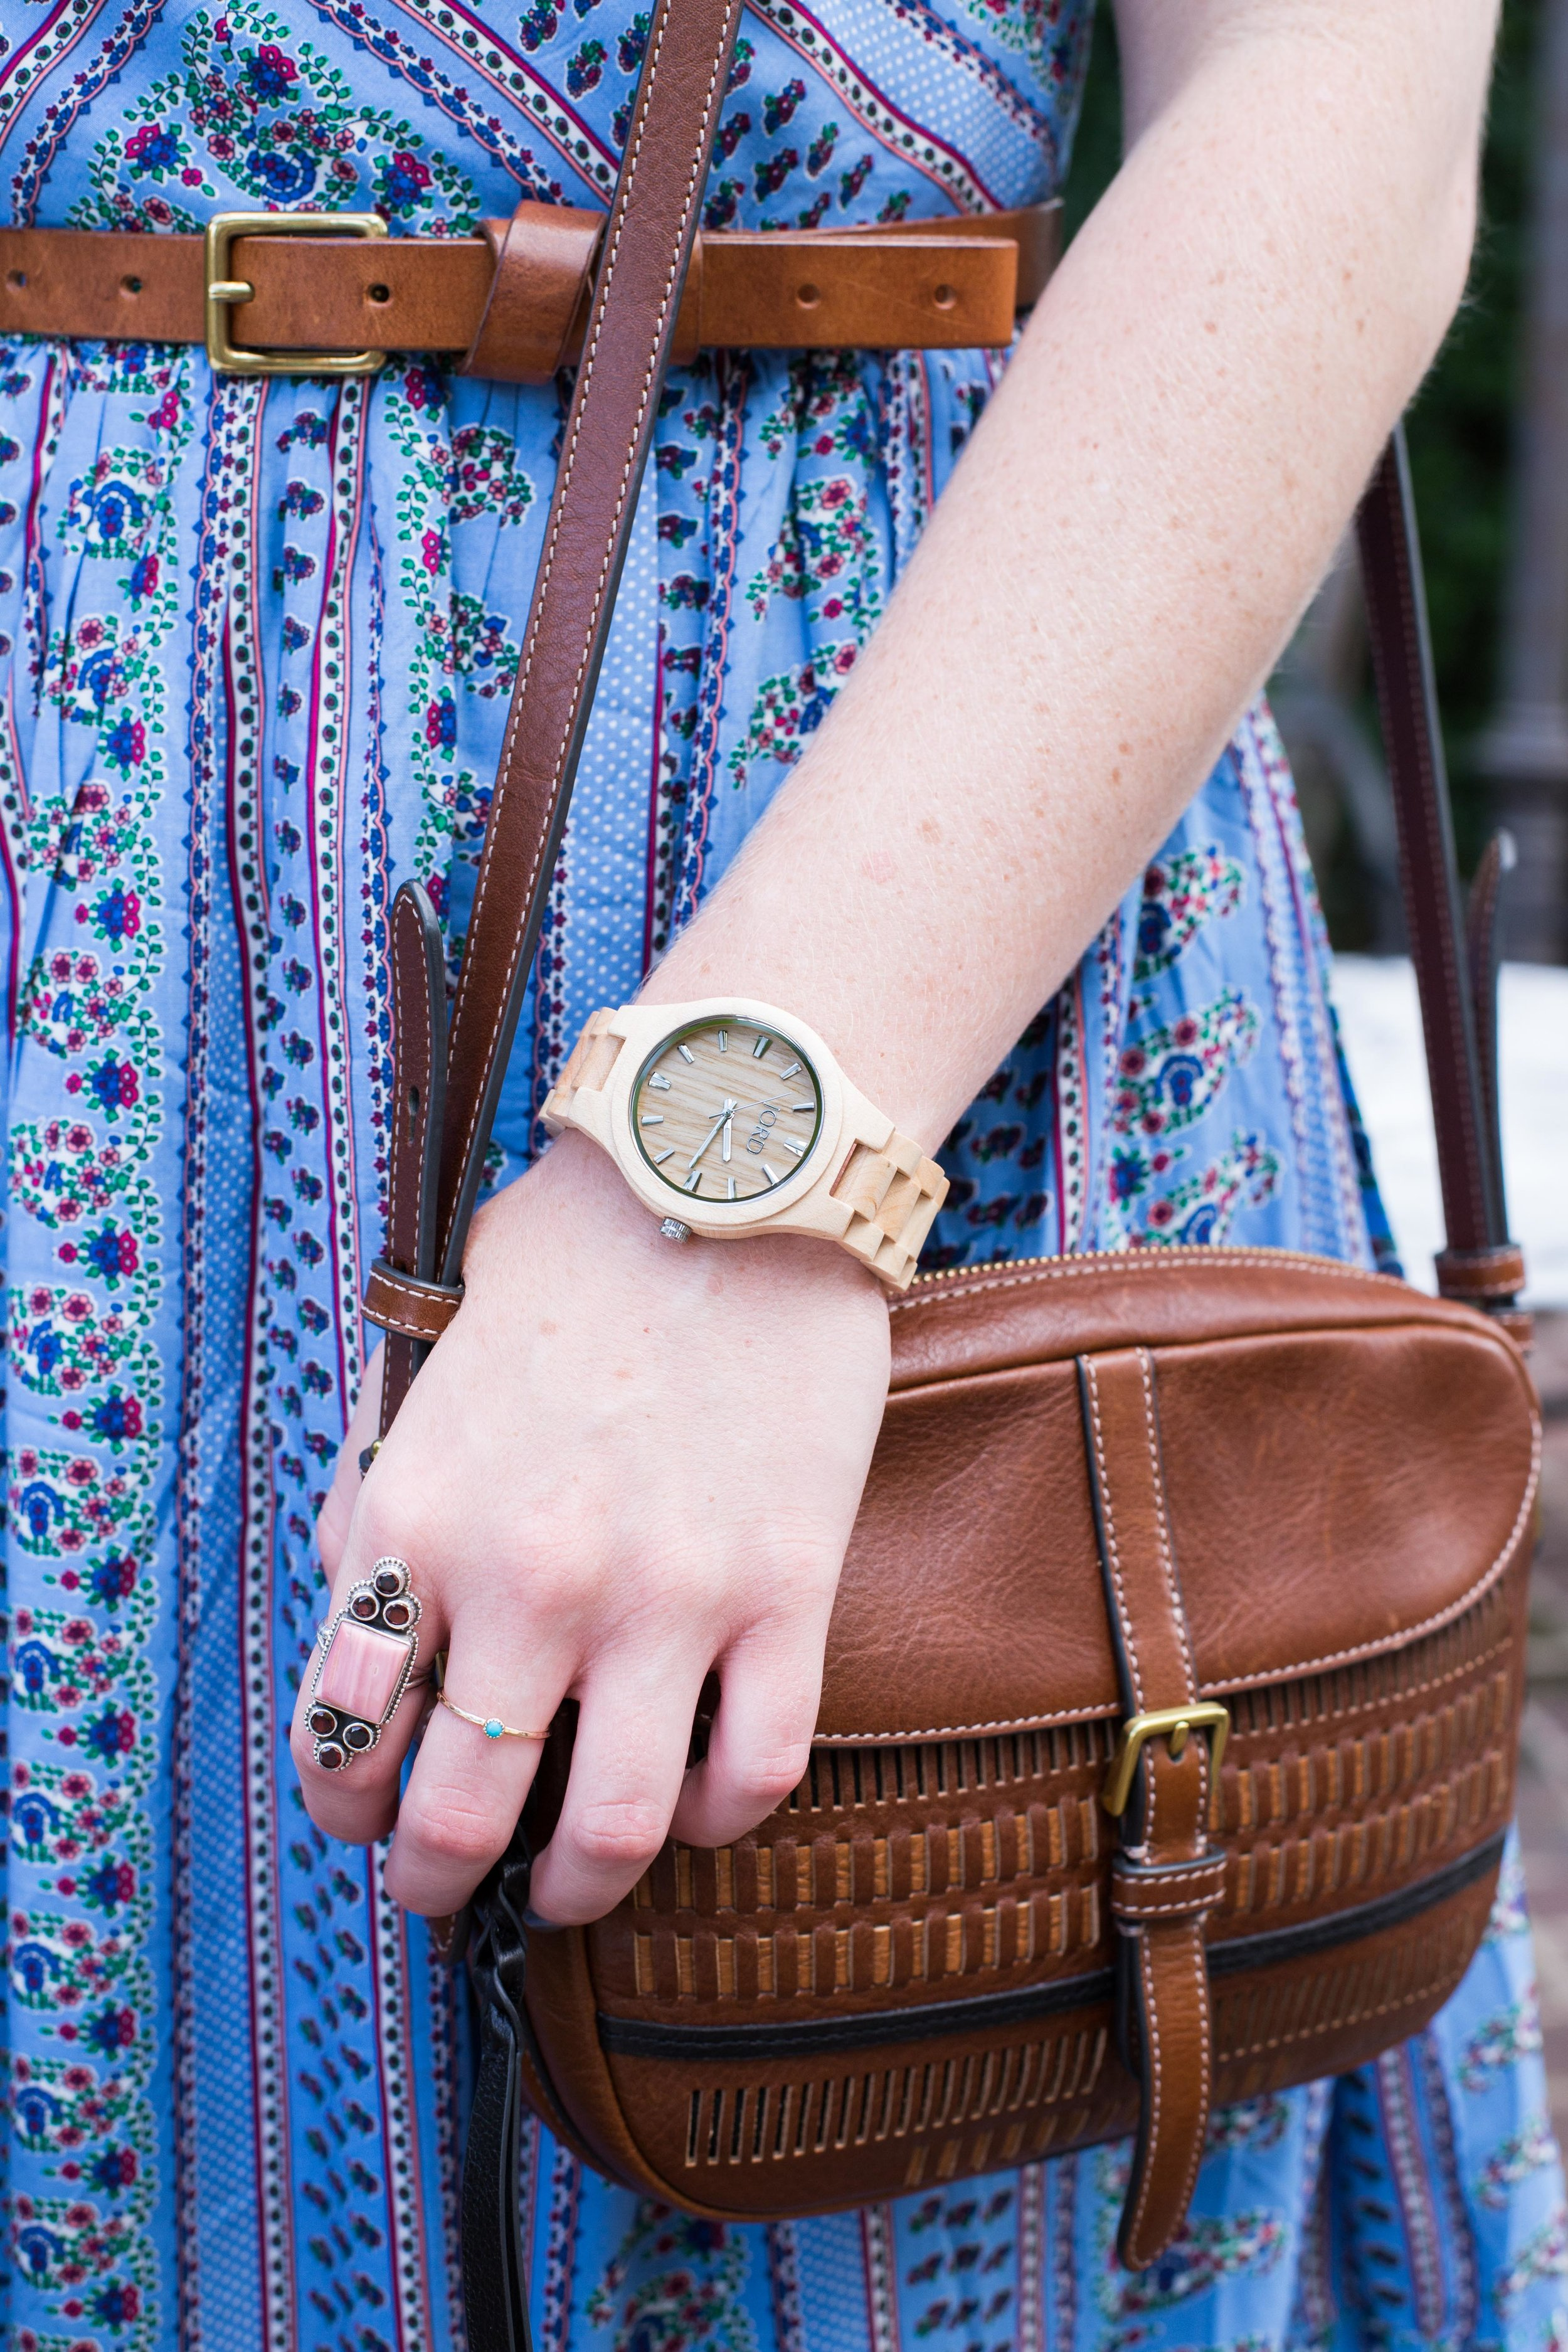 This unique, wooden Jord Watch is the perfect addition to an outfit.